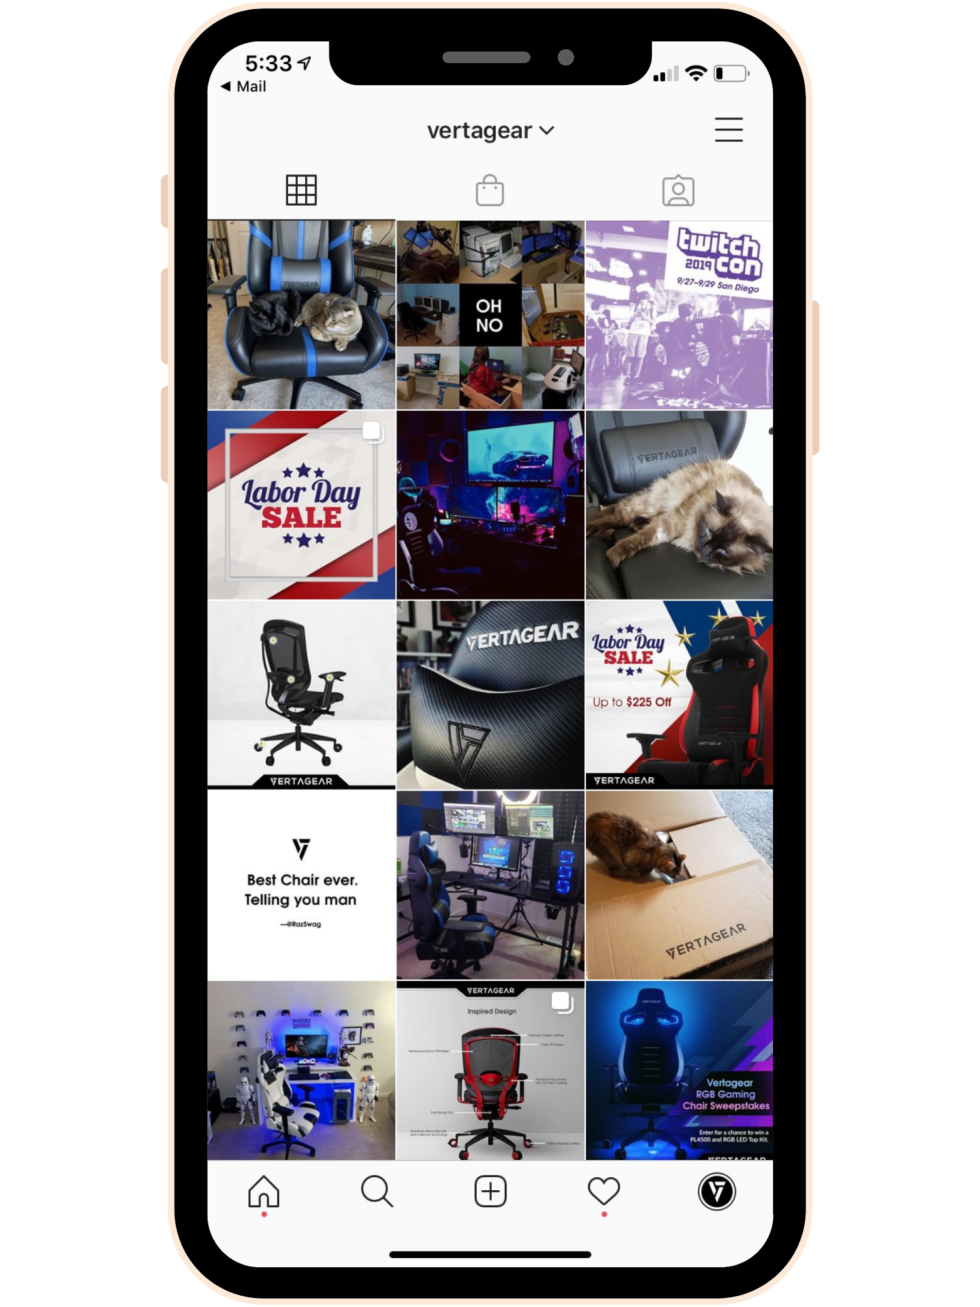 Mobile iPhone screenshot of Vertagear Instagram page. Instagram photos include photos of gaming chairs.